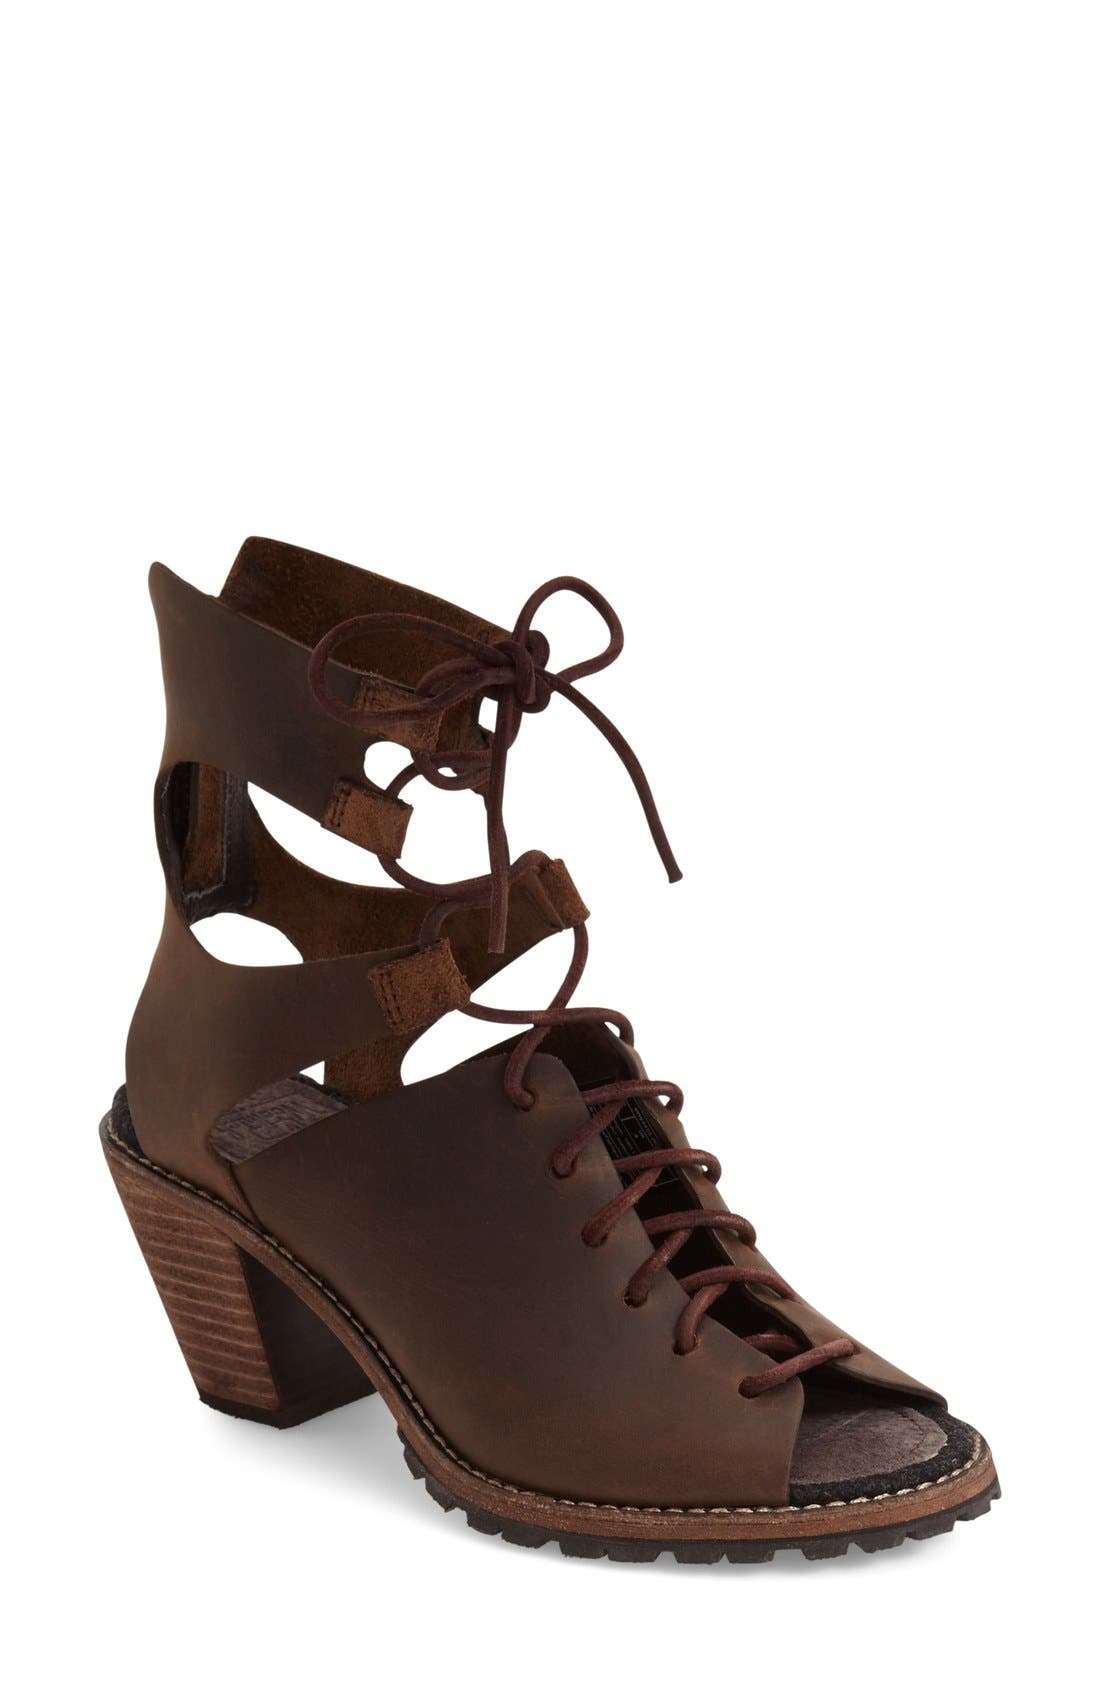 'Mohave Arroyo' Lace-Up Boot,                             Main thumbnail 1, color,                             Bitter Chocolate Leather